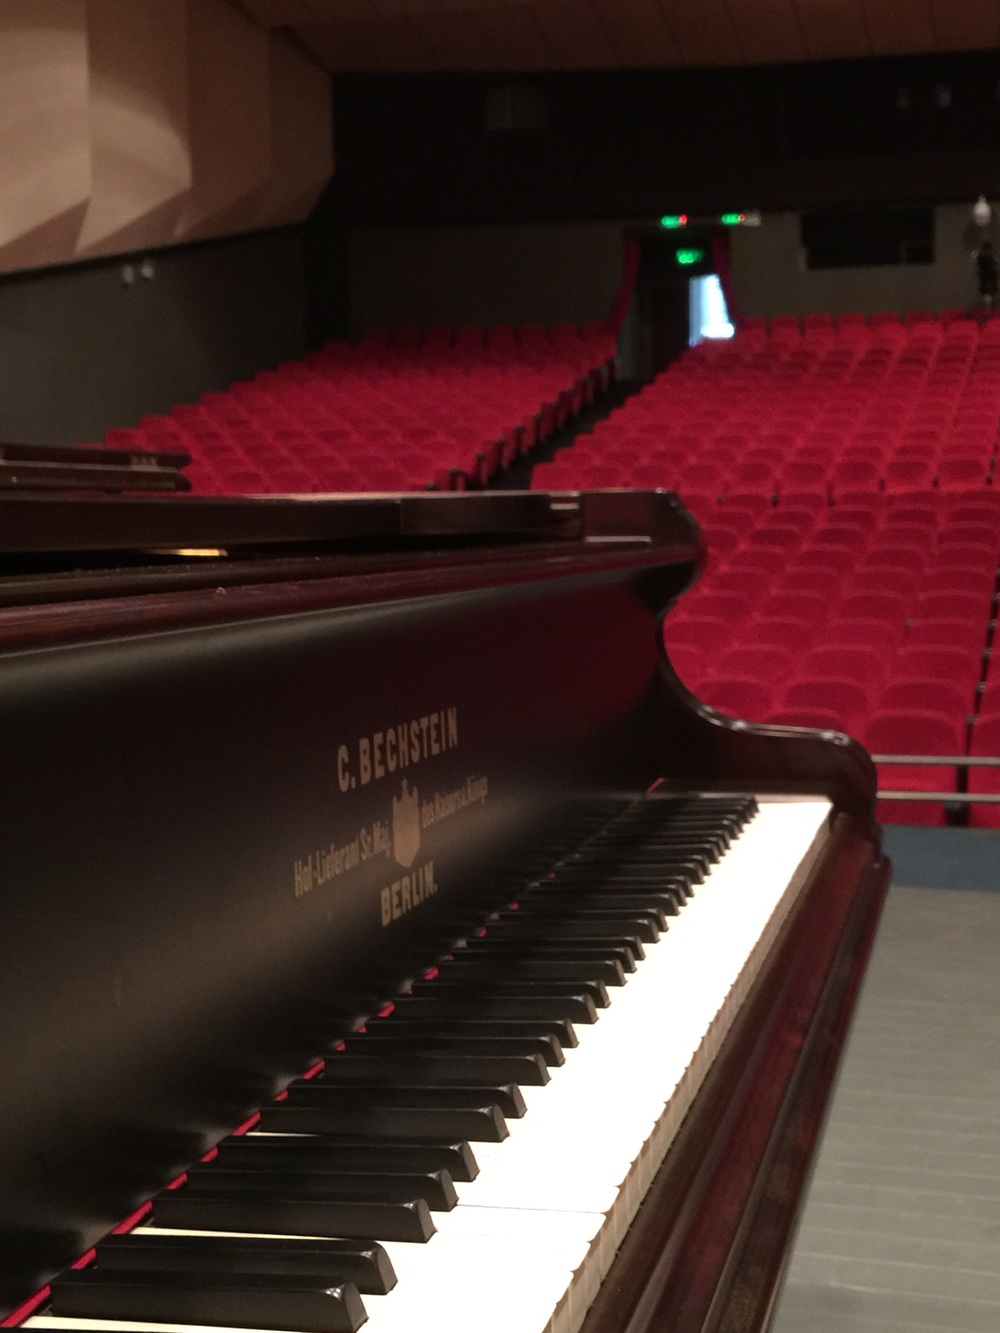 This lovely Bechstein concert grand was able to deliver inspiring color and tone palettes.